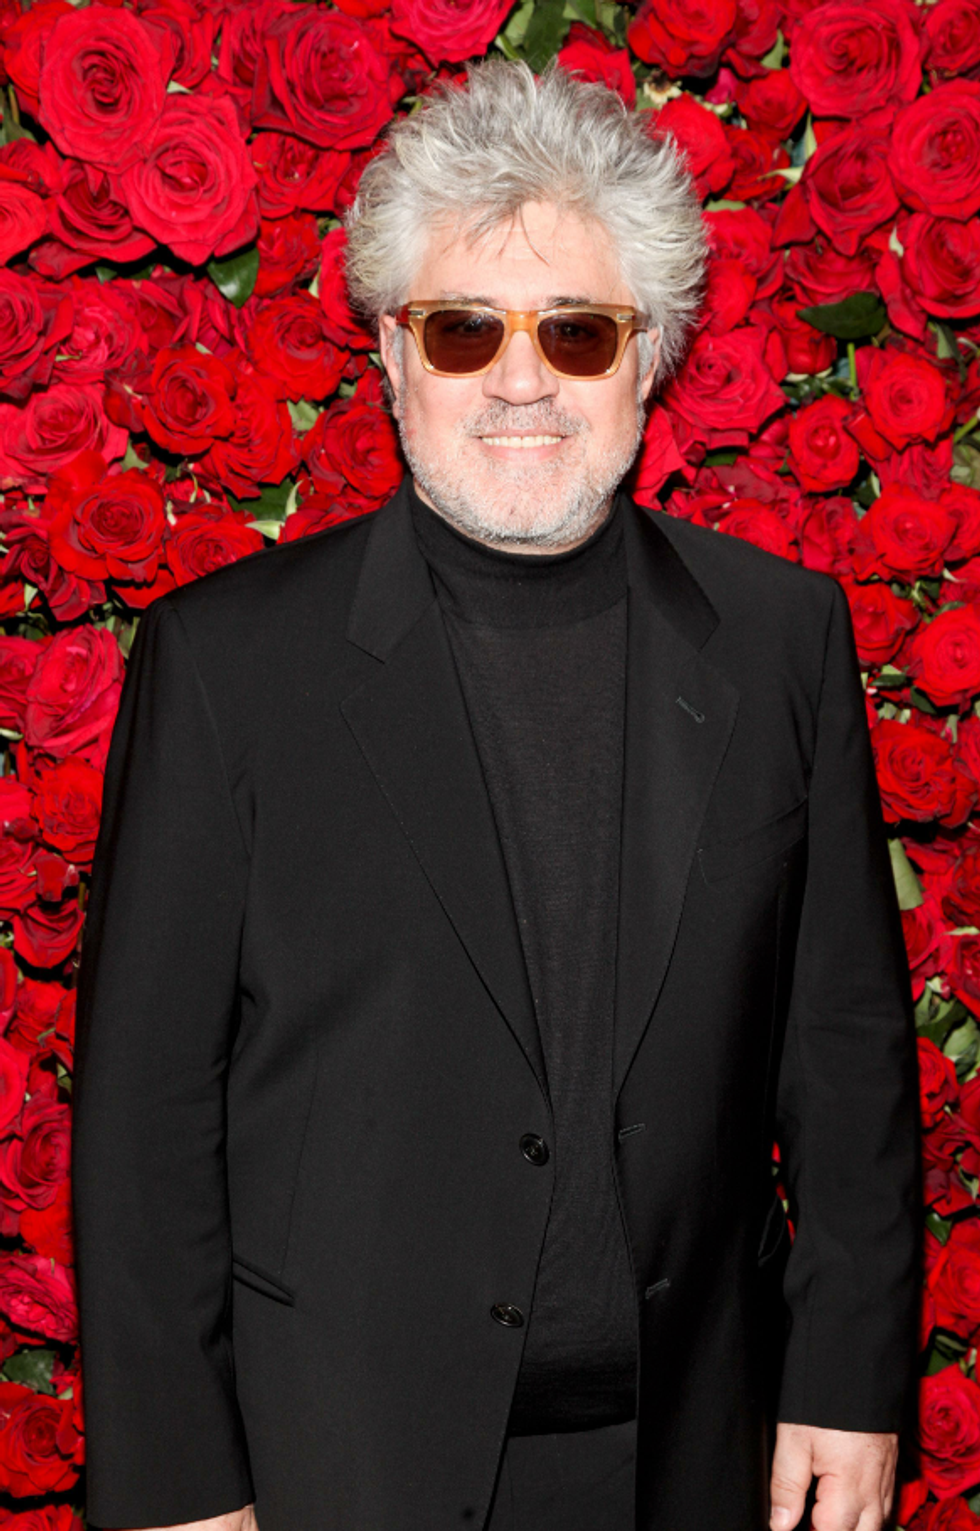 Pedro Almodóvar On His Latest Film, Gayness in Spain and Royal Scandal